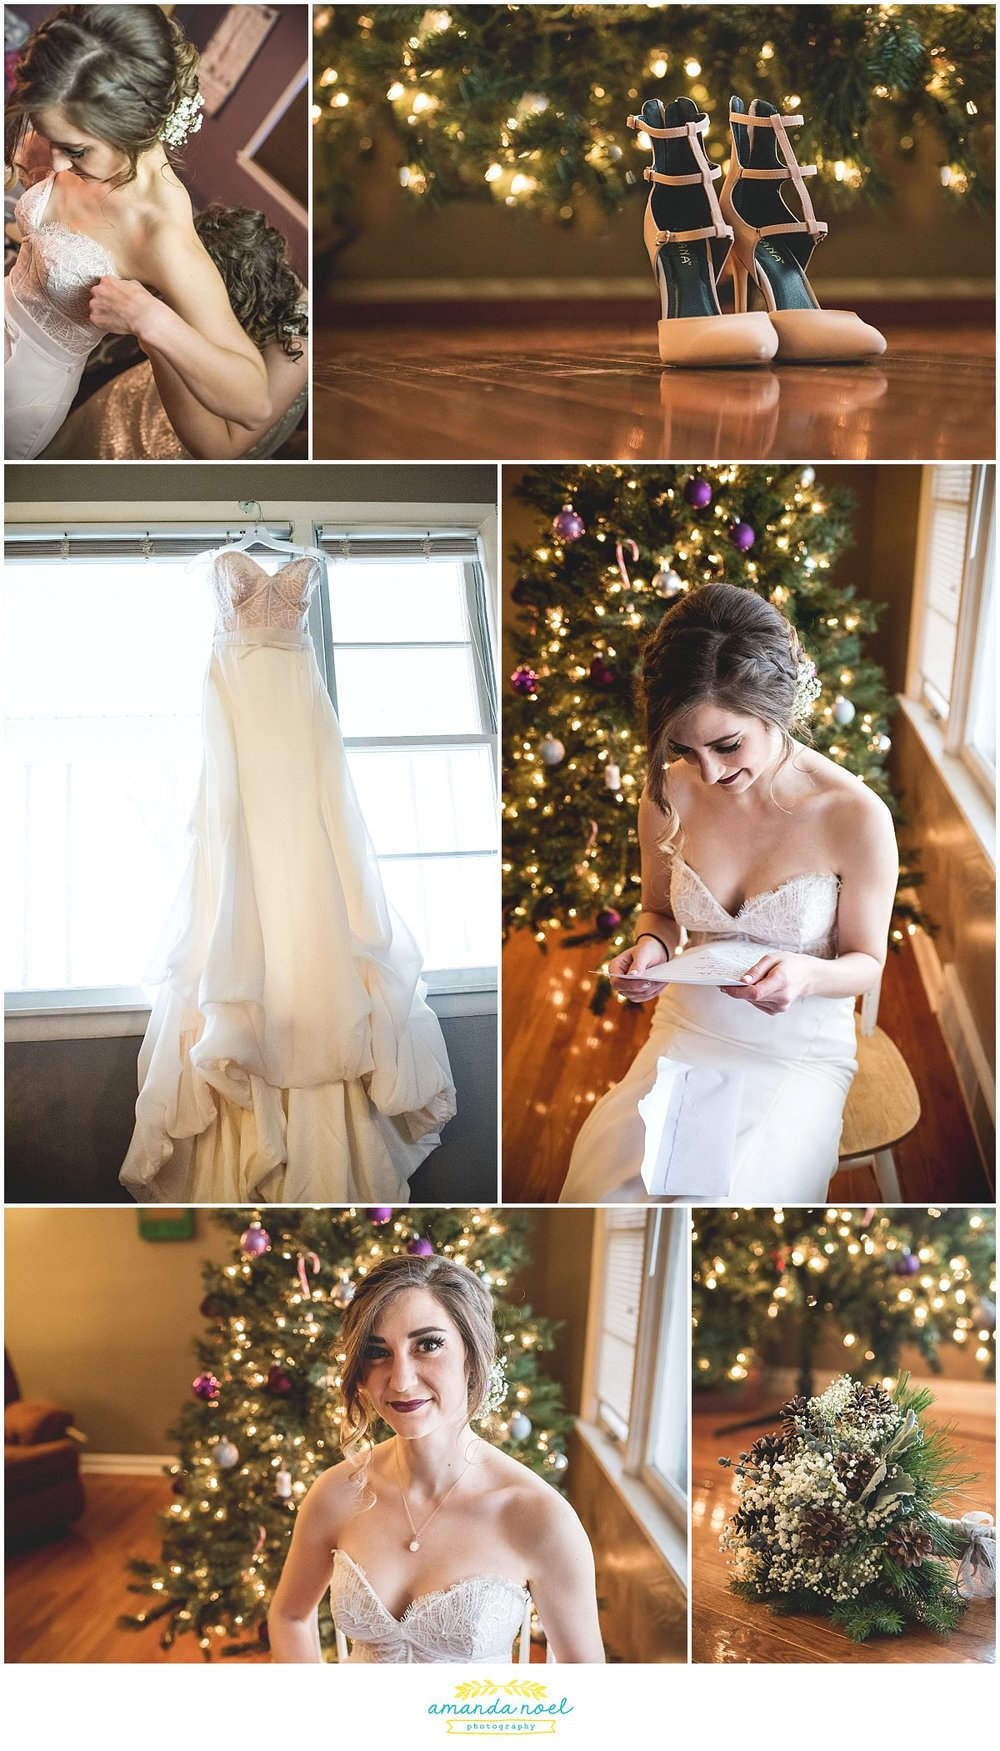 Springfield Ohio Winter wedding bride + details | Amanda Noel Photography